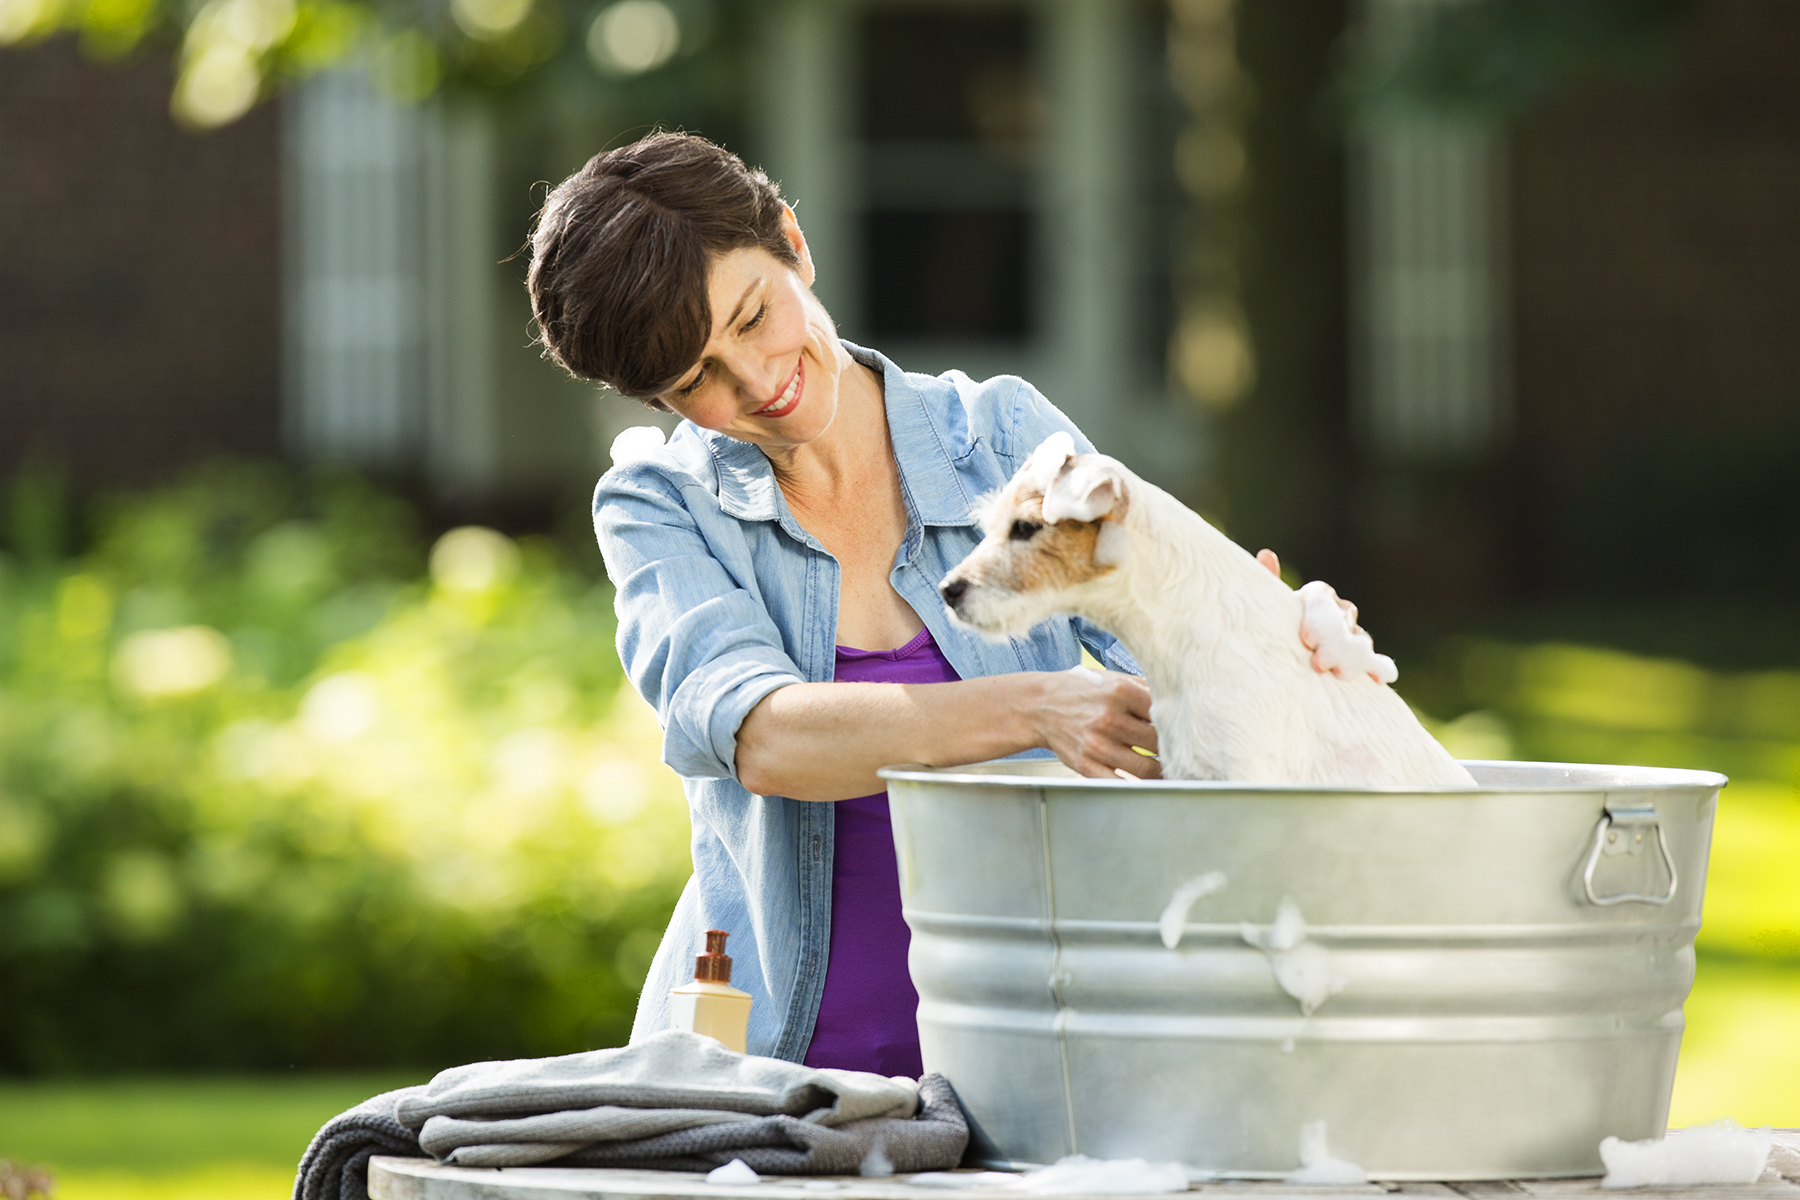 Man-Washing-Dog-143_r1.jpg